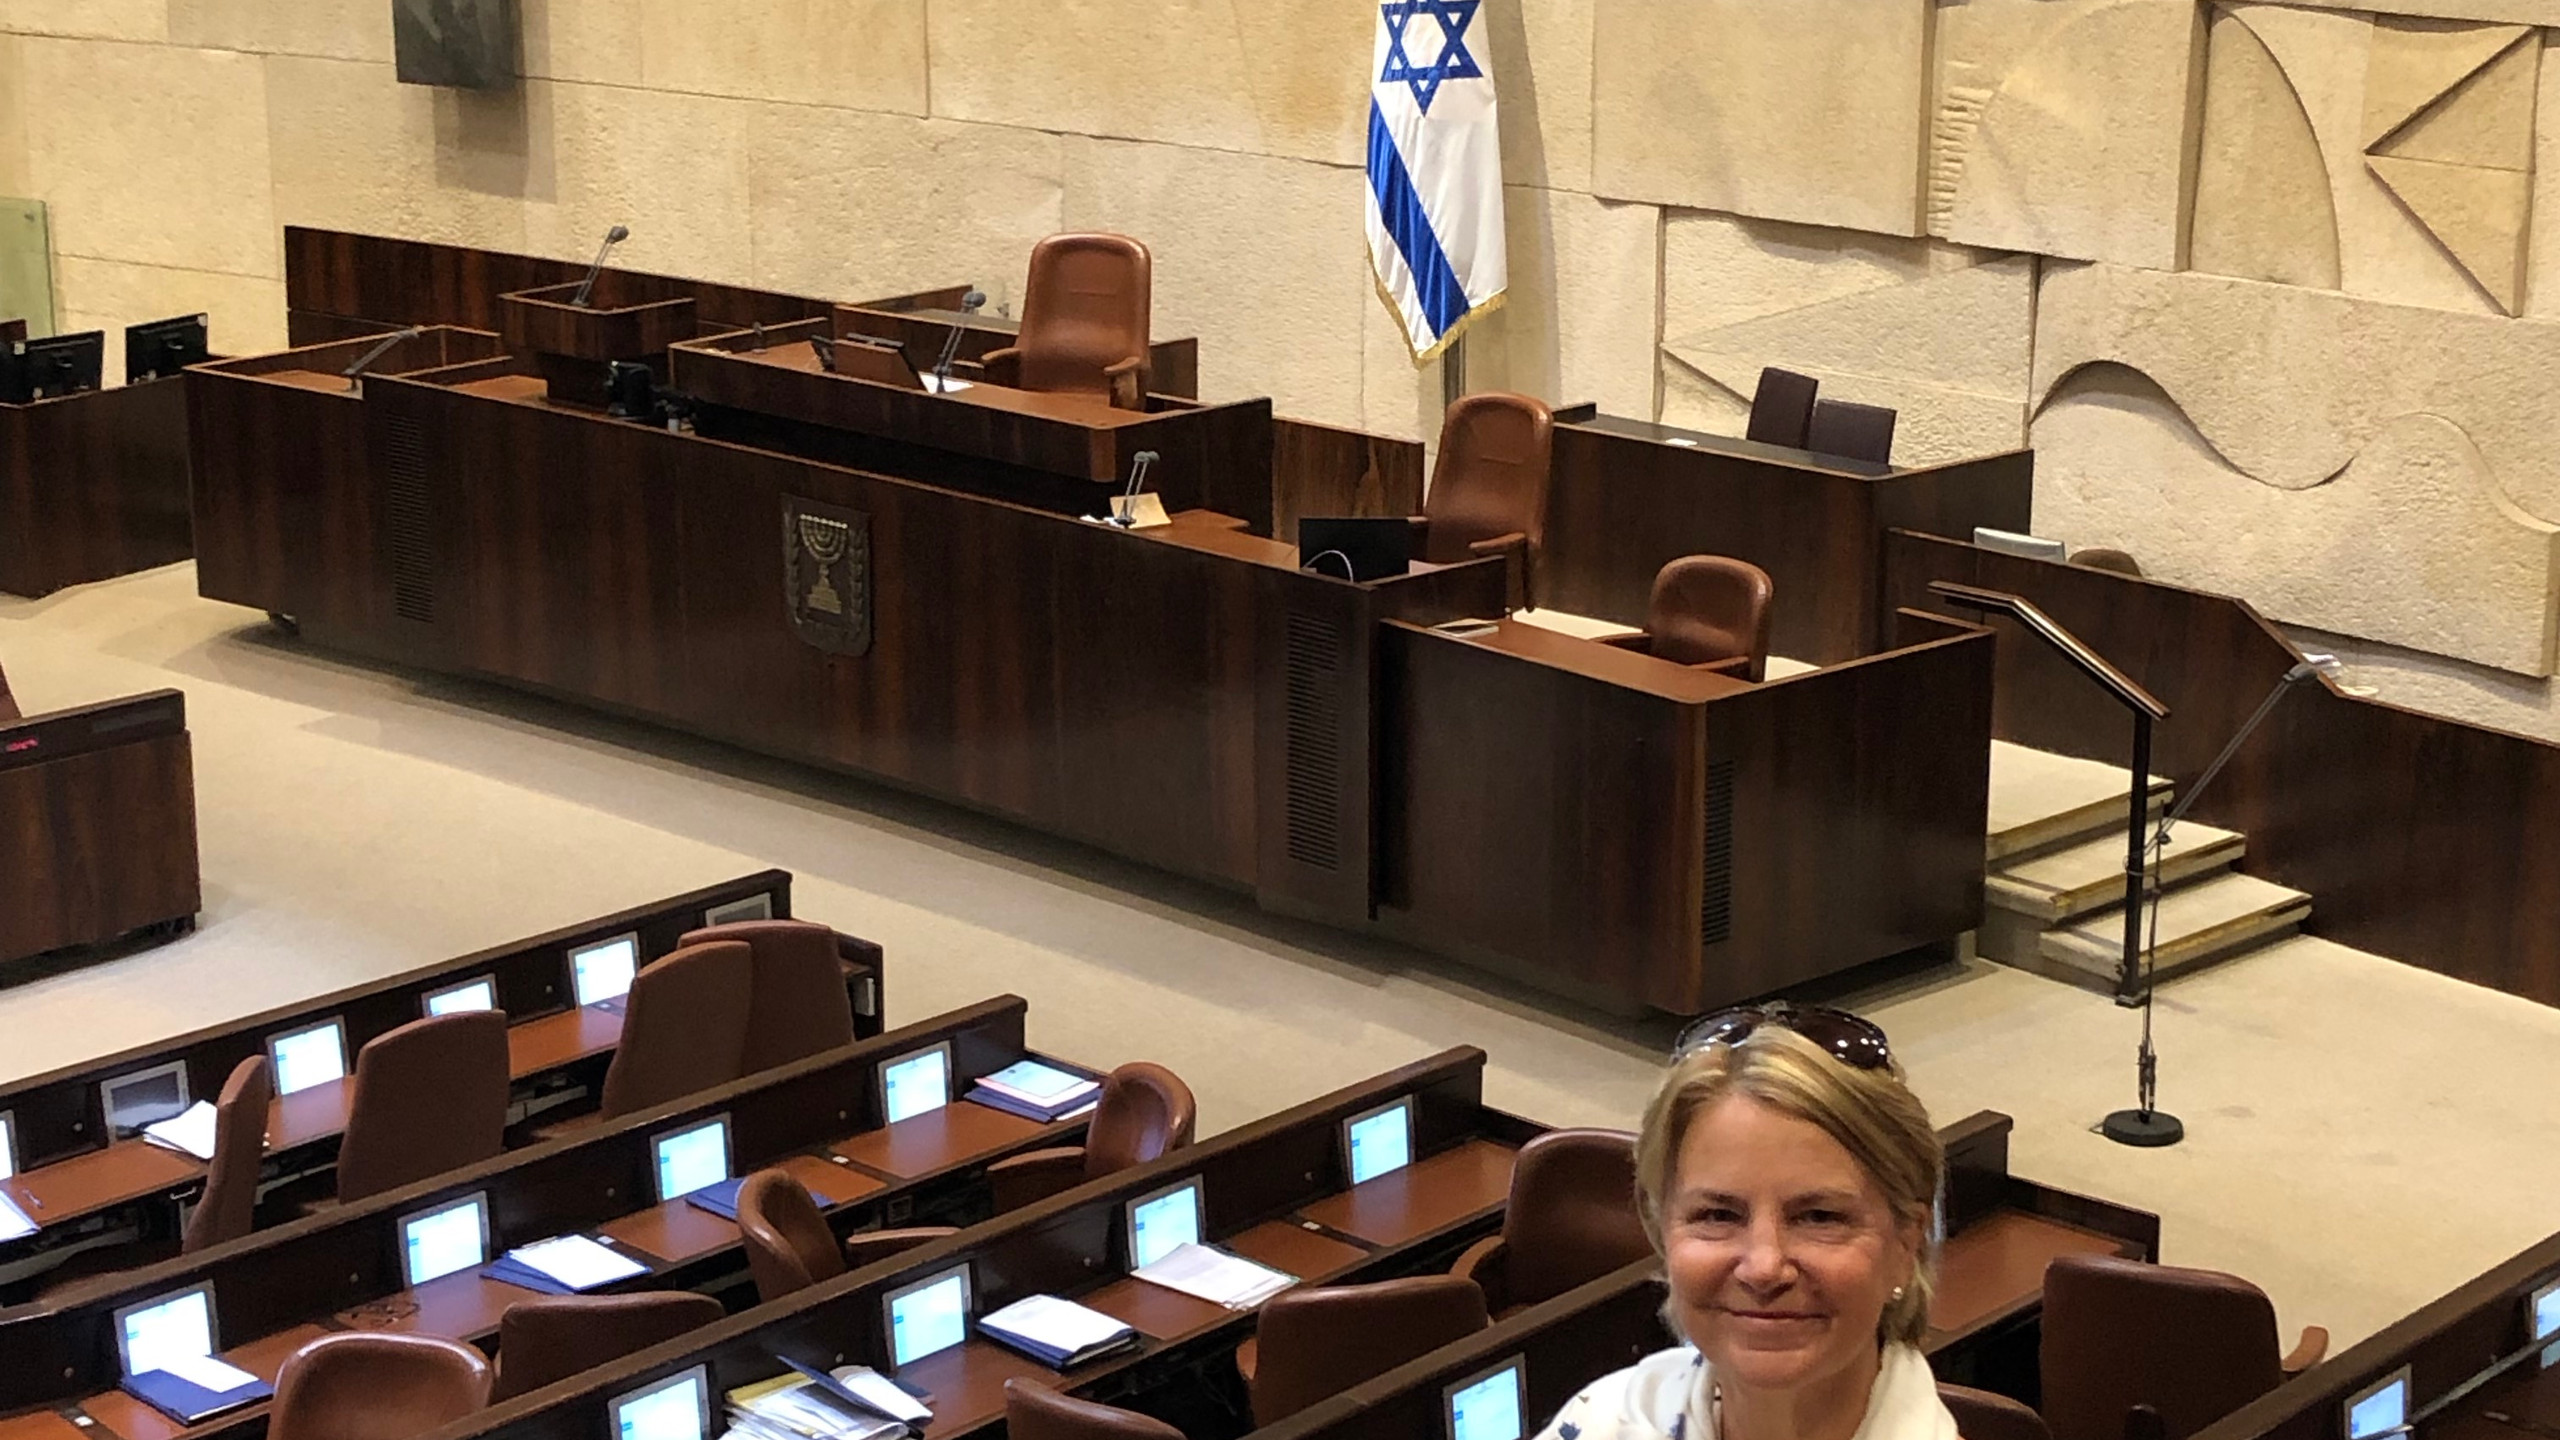 The Assembly Hall of the Knesset